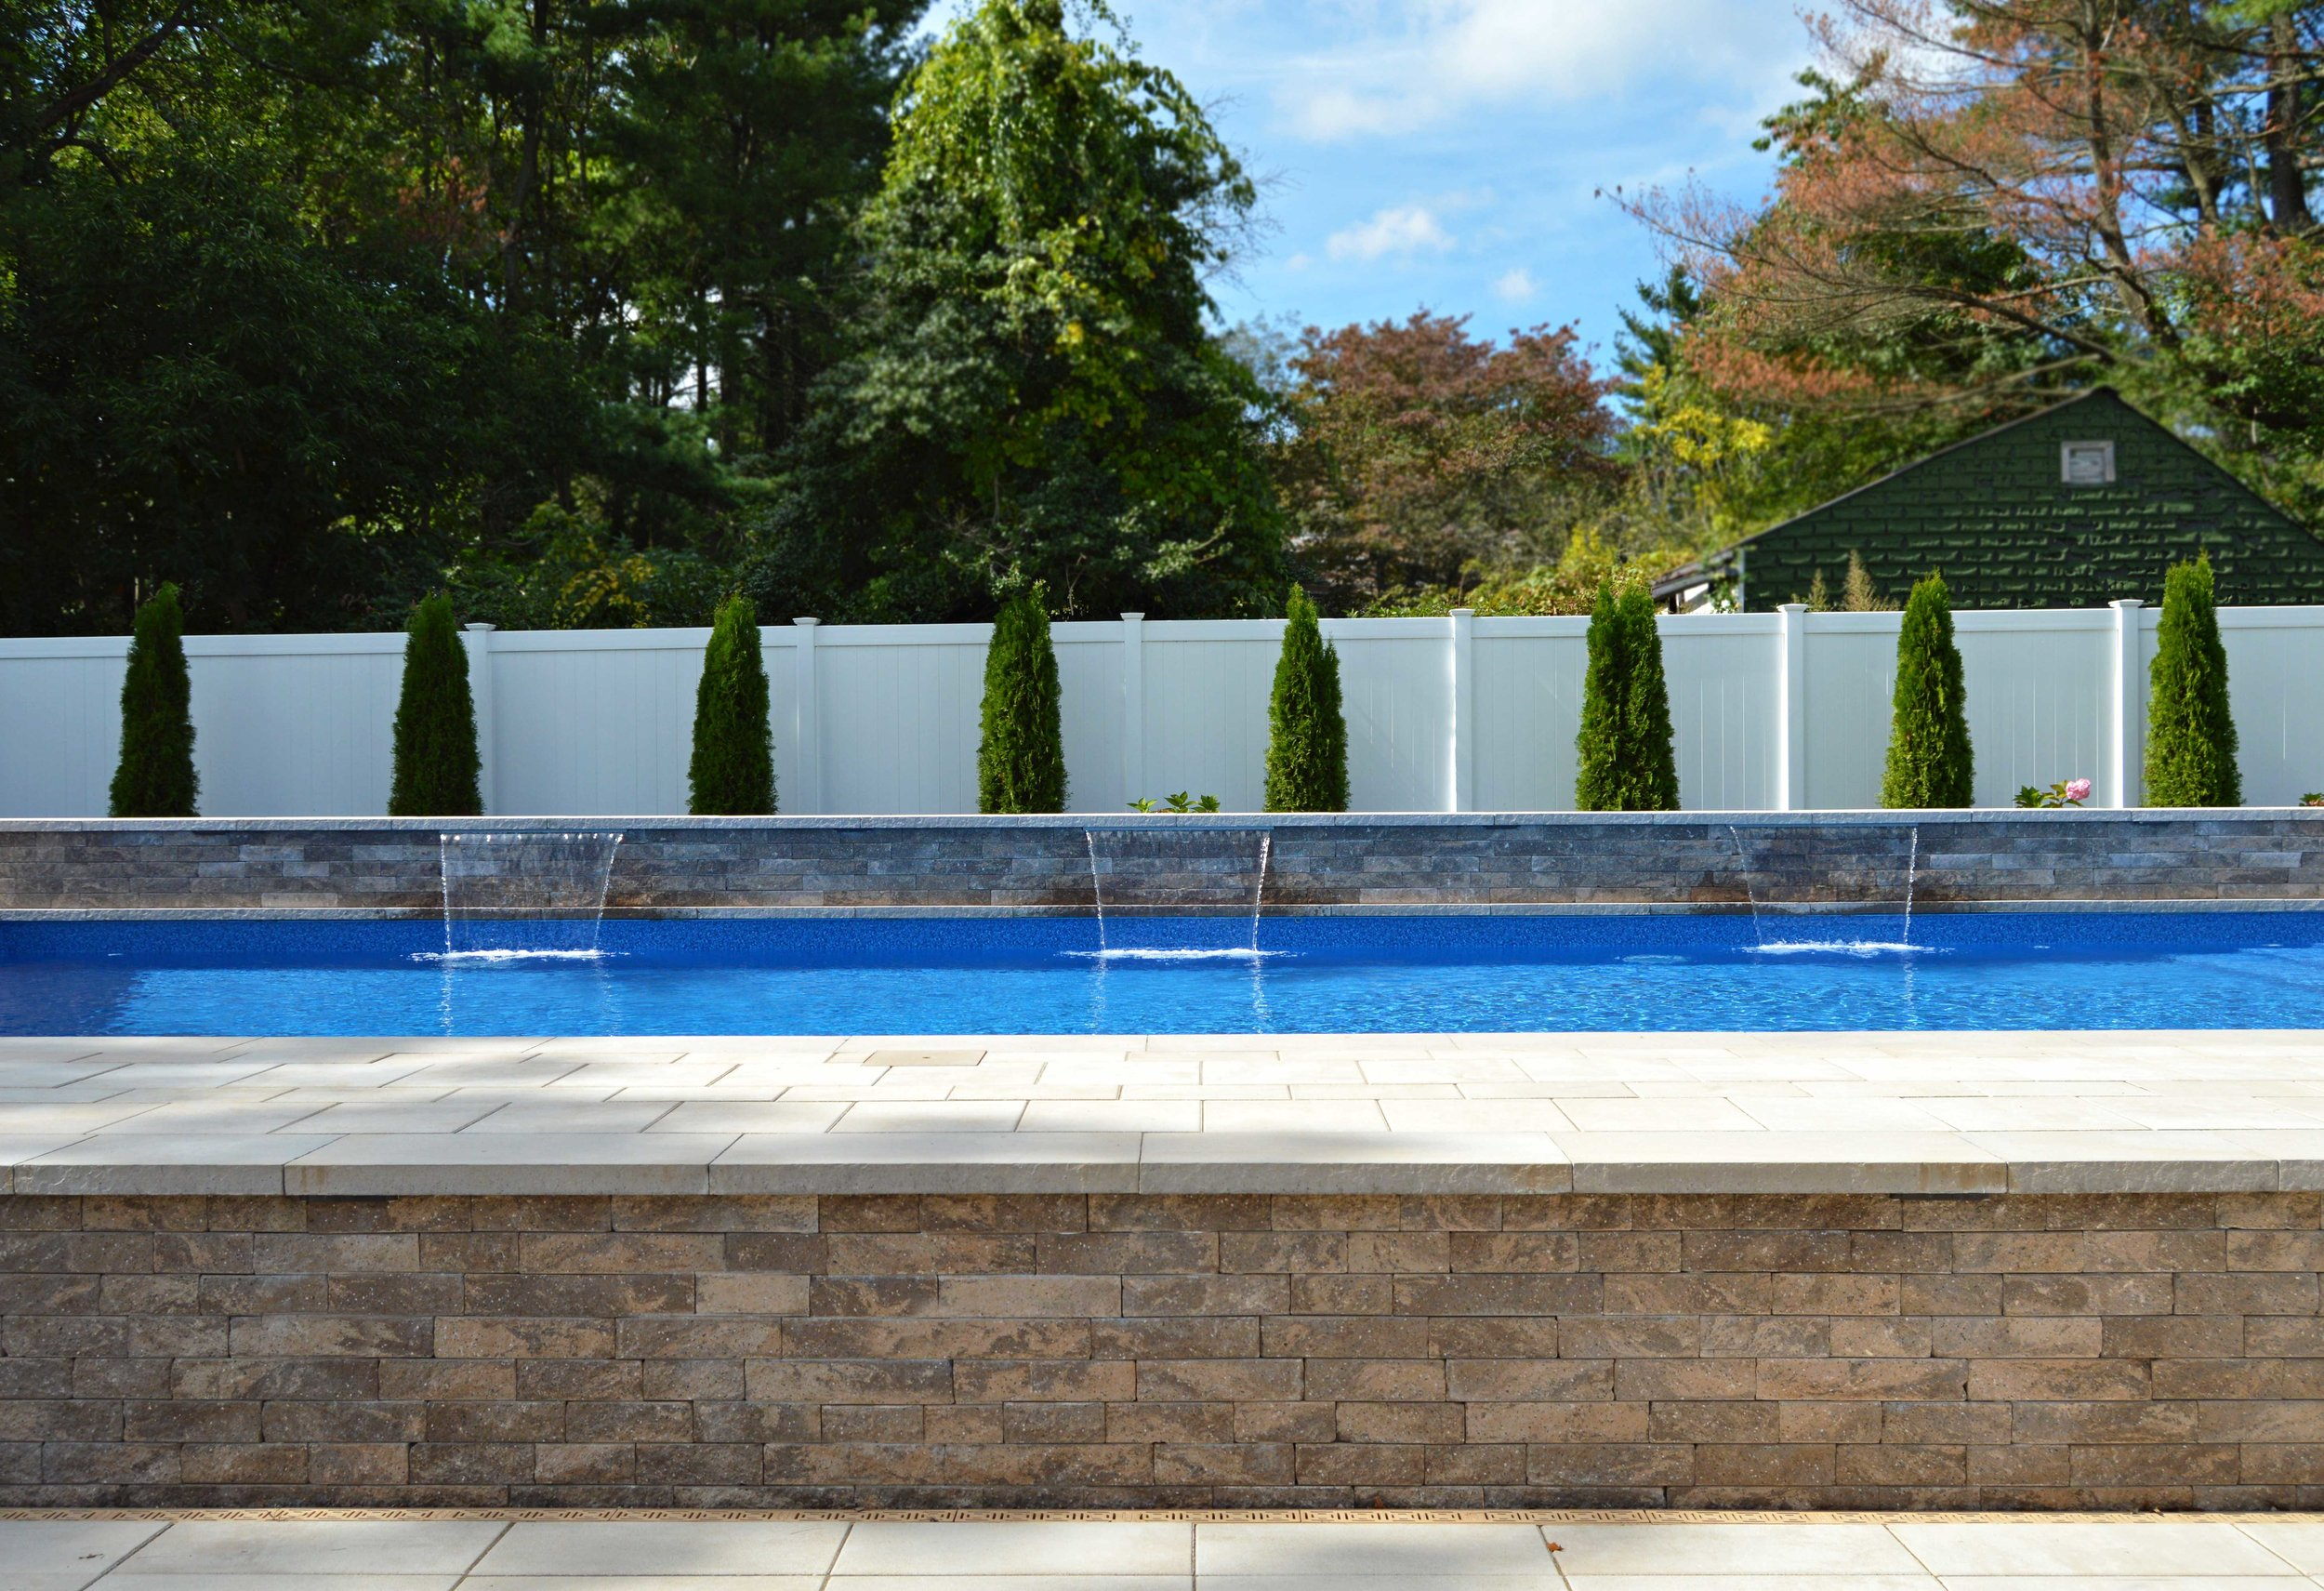 Gunite Swimming Pool Design in Long Island, NY